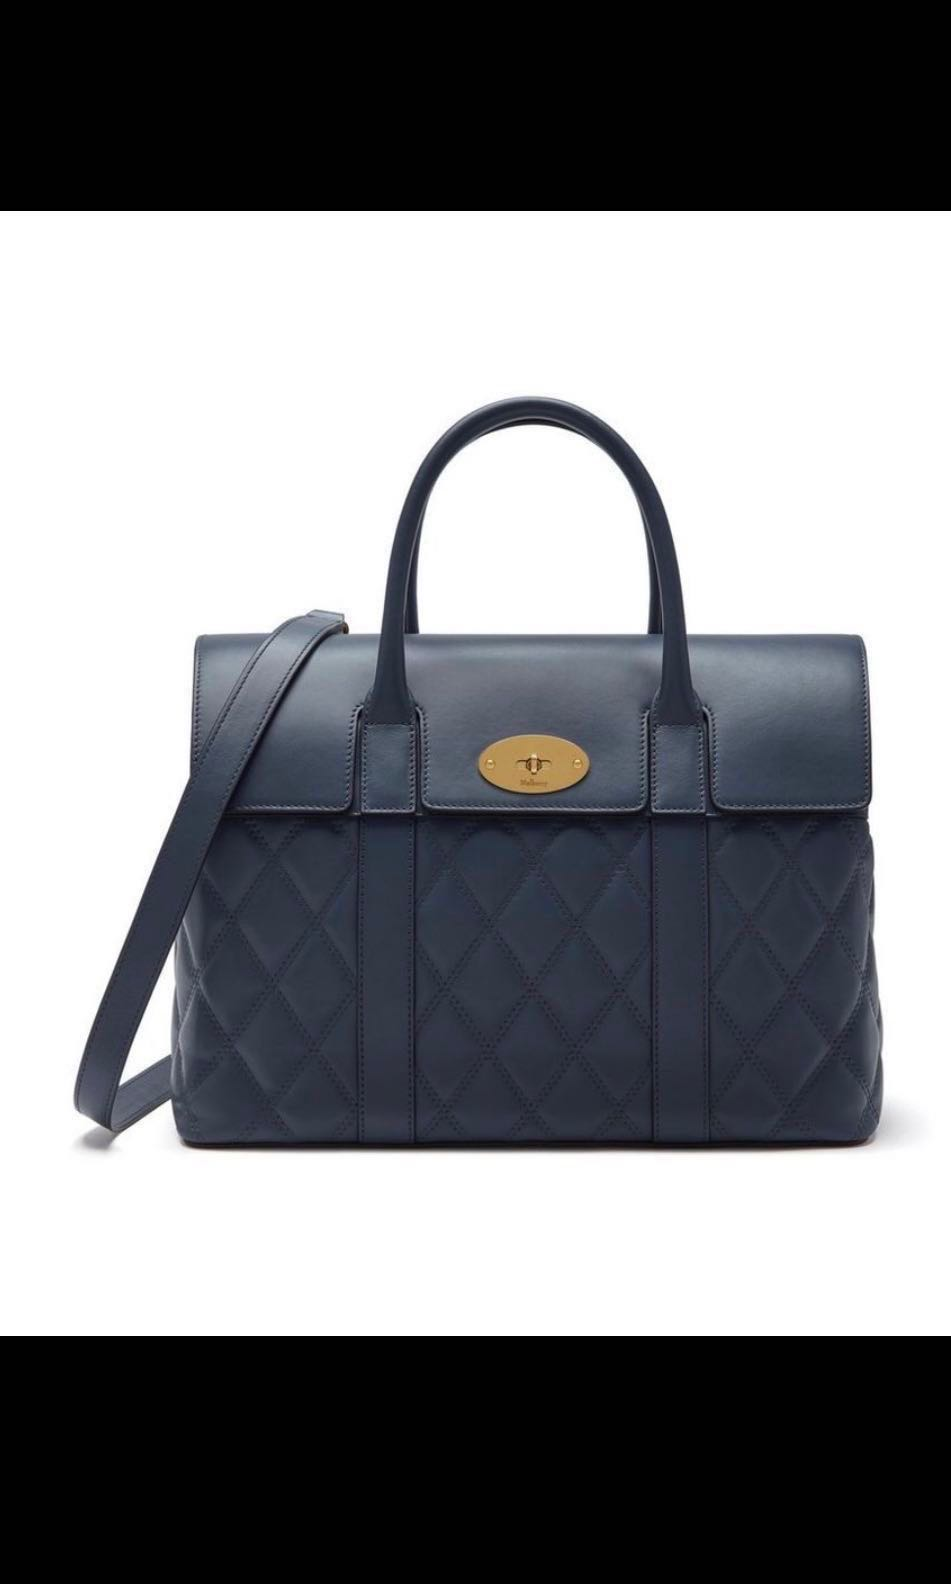 8fe9b1e0a4b Sale! Mulberry Bayswater in Elephant Quilted Silky Calf, Luxury ...